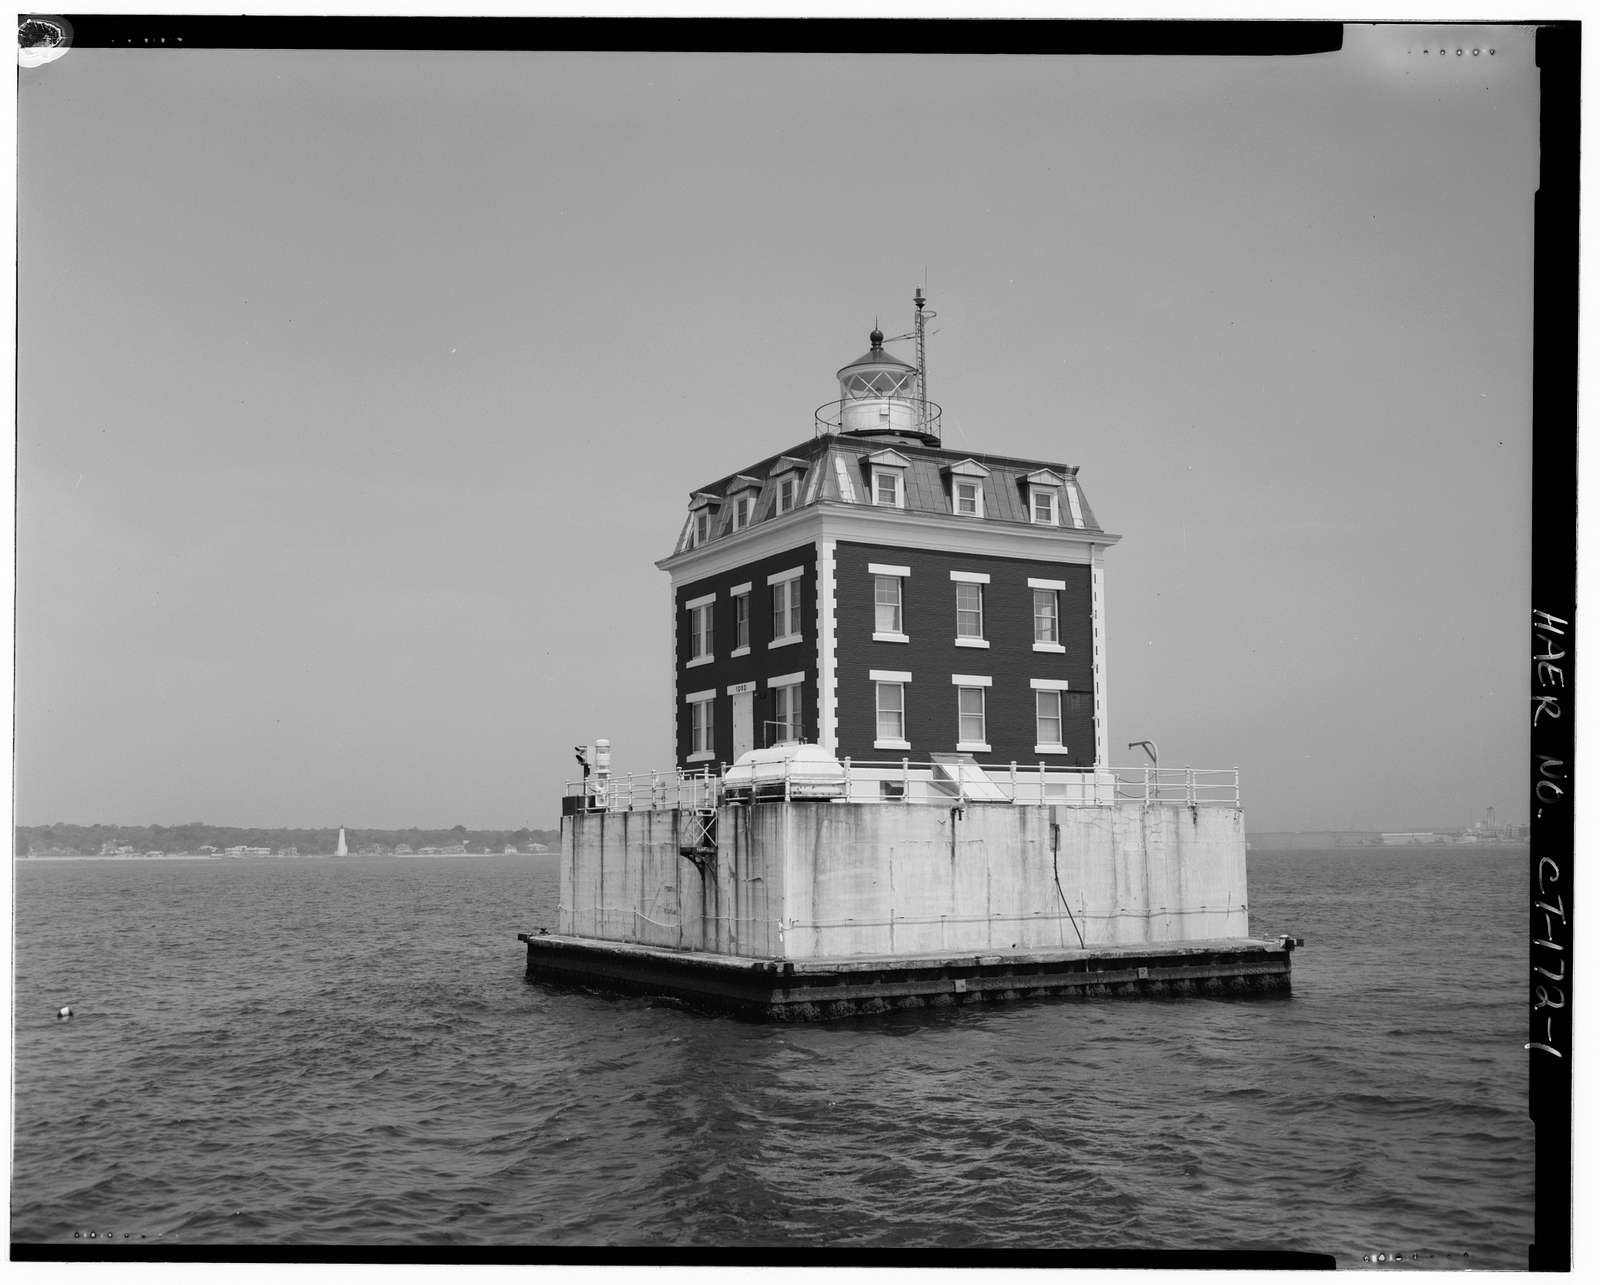 New London Ledge Lighthouse, Long Island Sound, East of main harbor channel, New London, New London County, CT